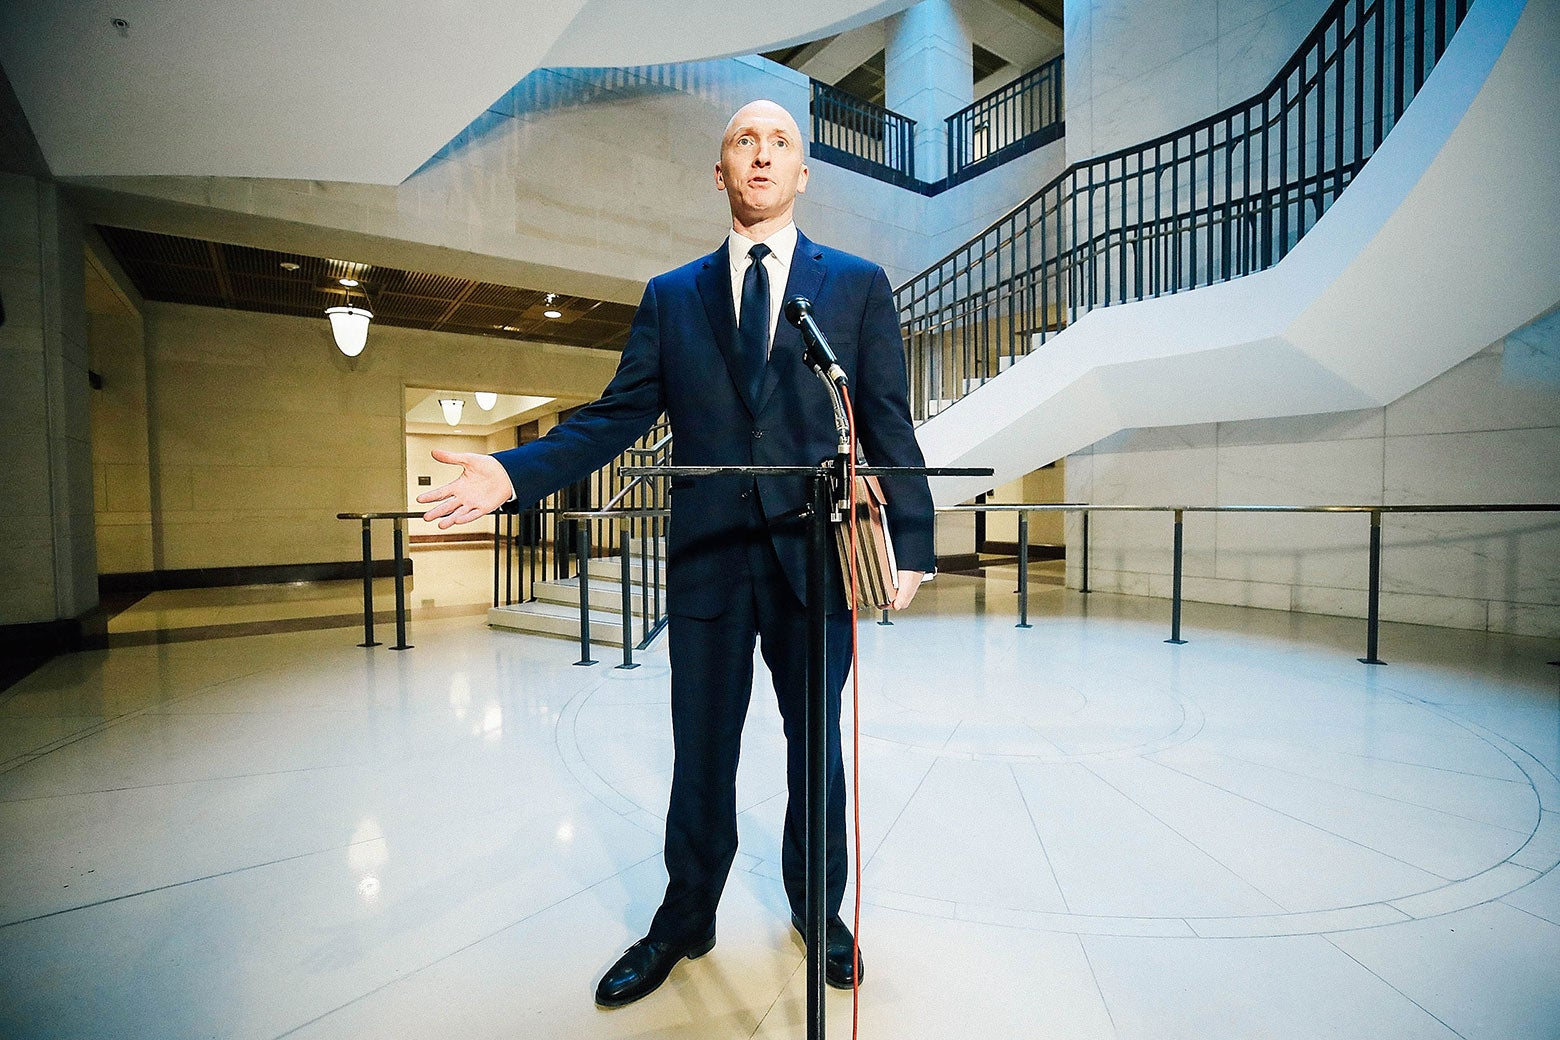 Carter Page standing at a microphone in a big open room.